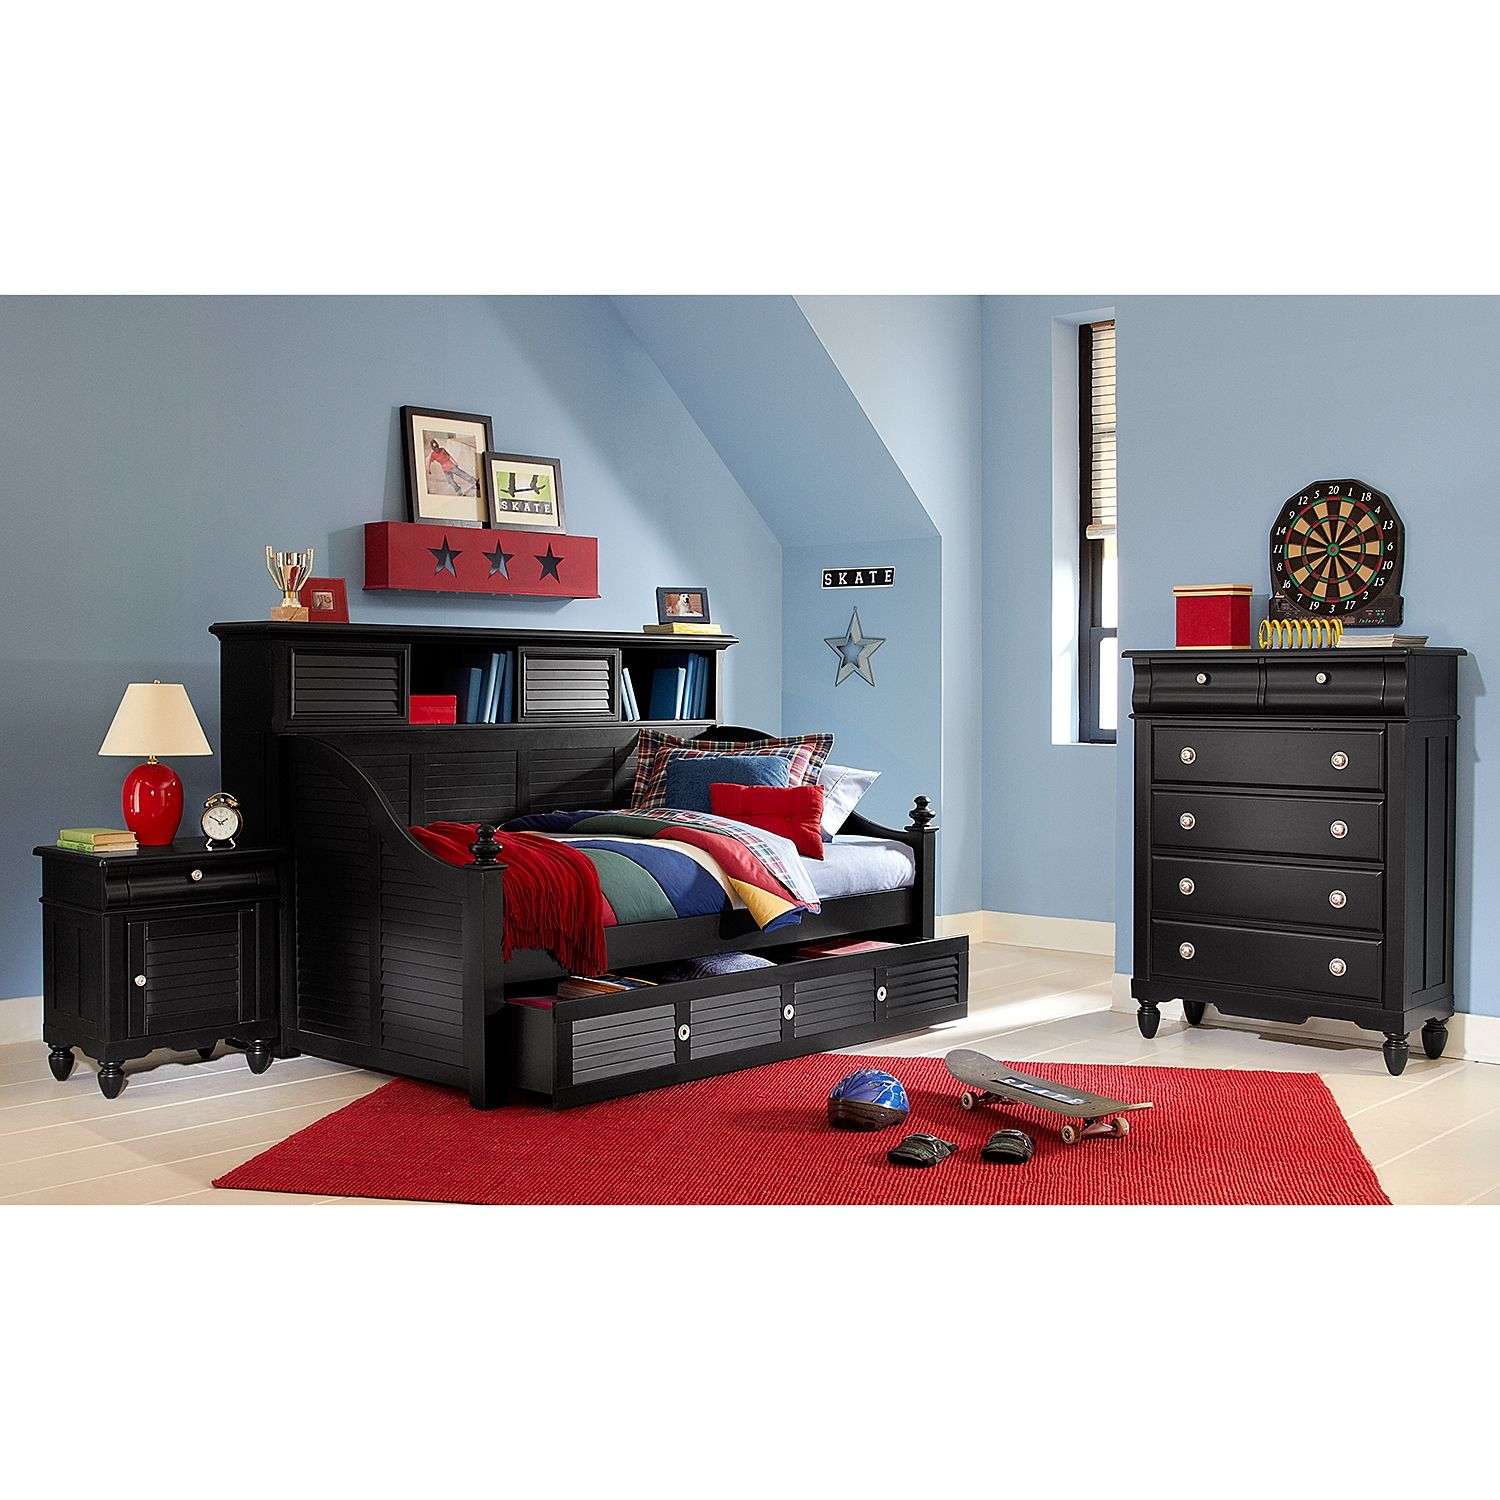 bed trundle then with mattress hemnes bookcase ah adults storage inspiration daybed day double si beds top decoration daybeds full twin ikea images sofa size wells together as lovely